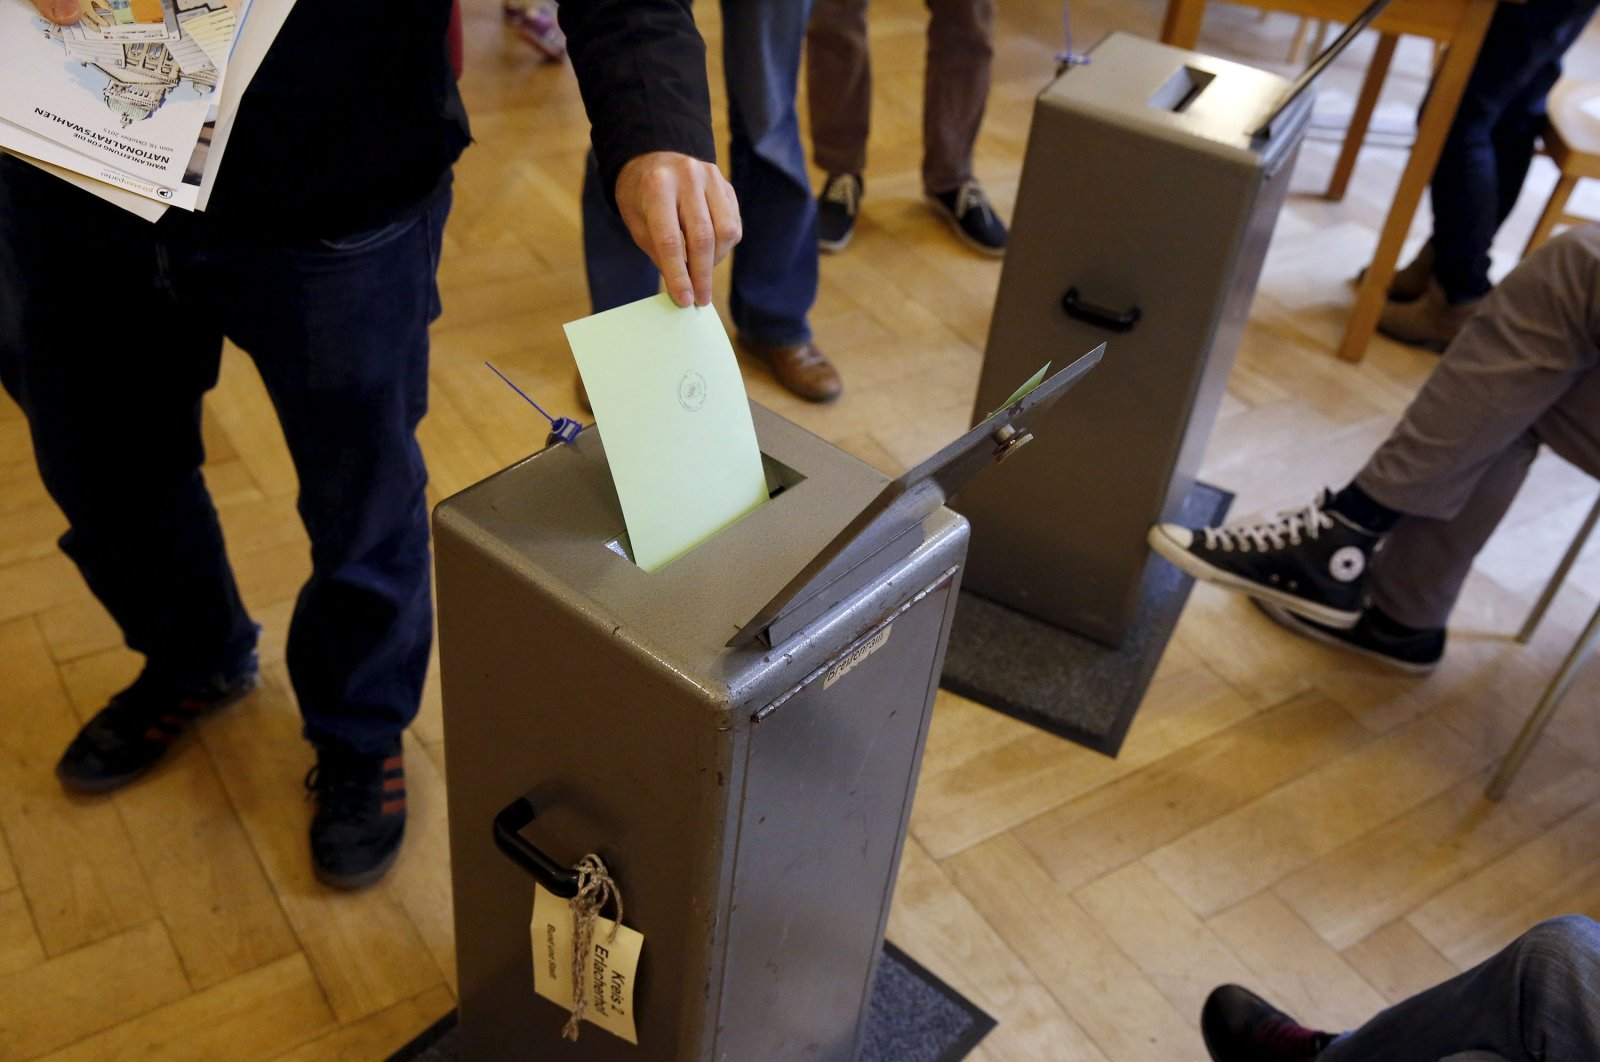 People cast their vote in a school house in Bern, Switzerland, Oct. 18, 2015. (Reuters Photo)